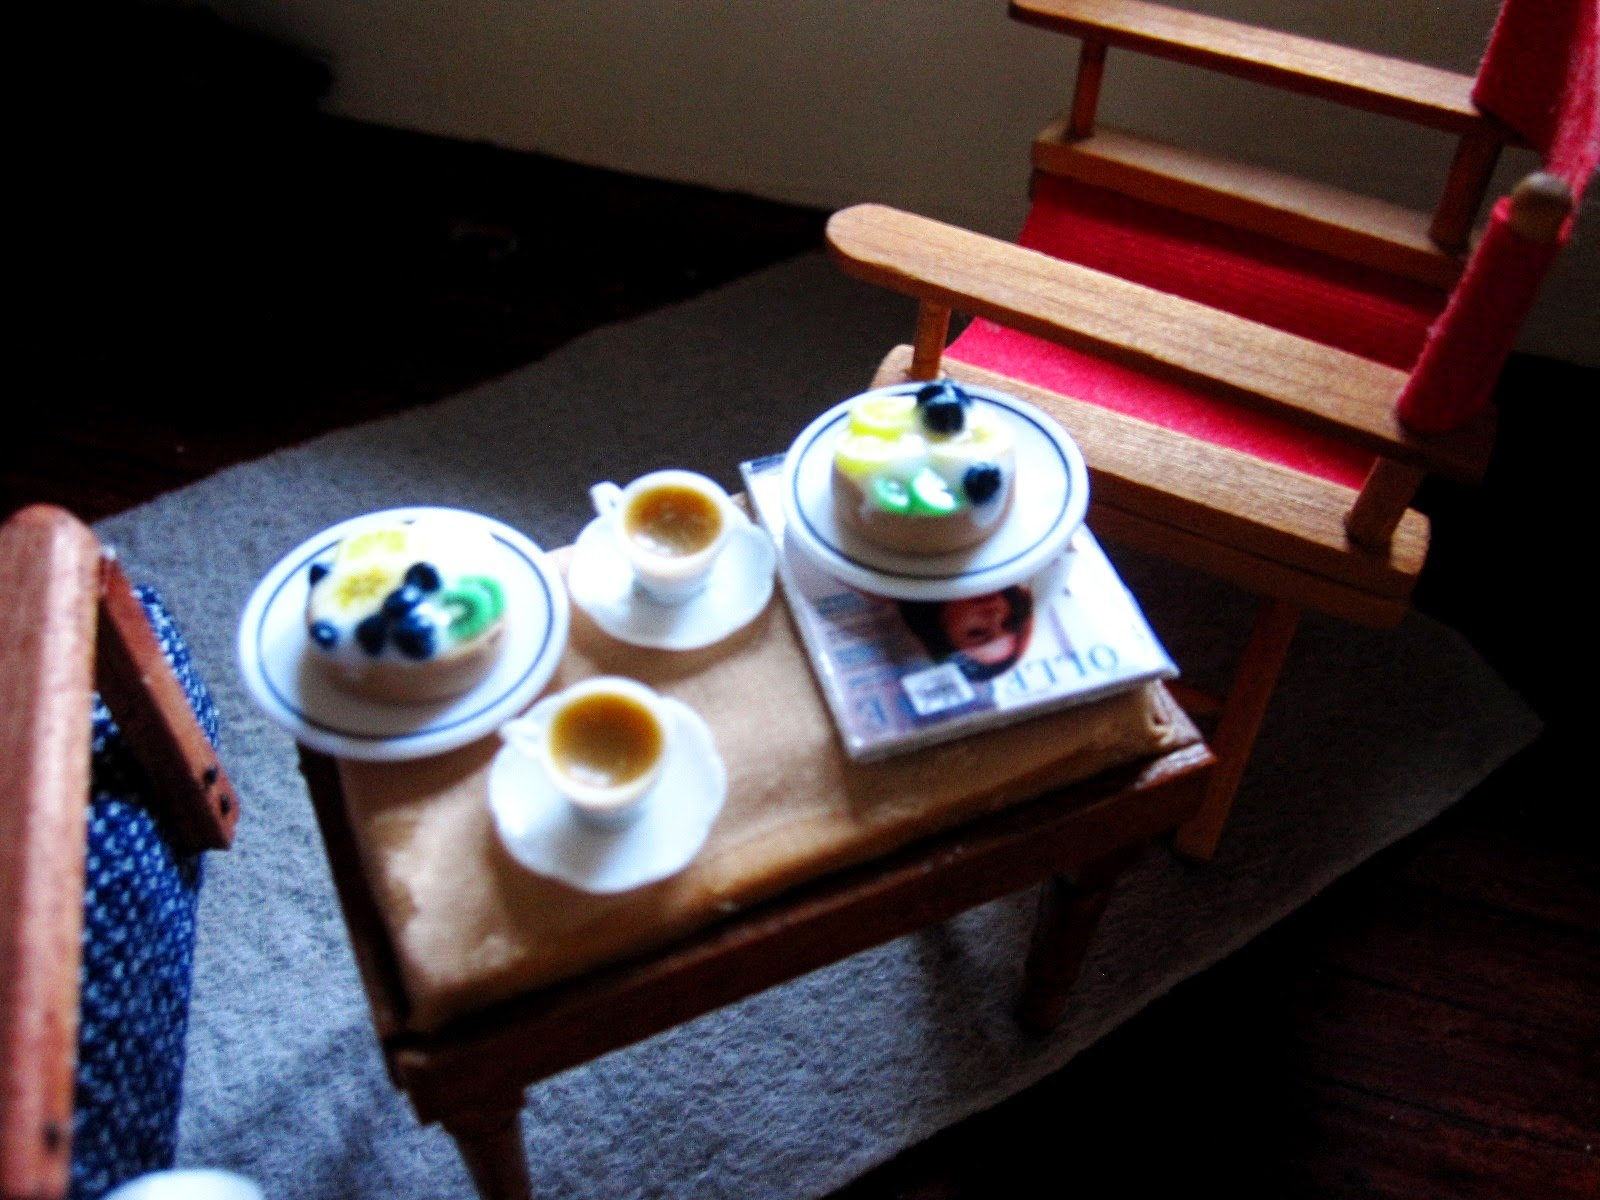 Aerial view of a miniature holiday house scene showing a sitting area with a 1950s-style lounge chair and directors chair . Between them is a piano stool set with two flans on plates and two cups of tea on top.